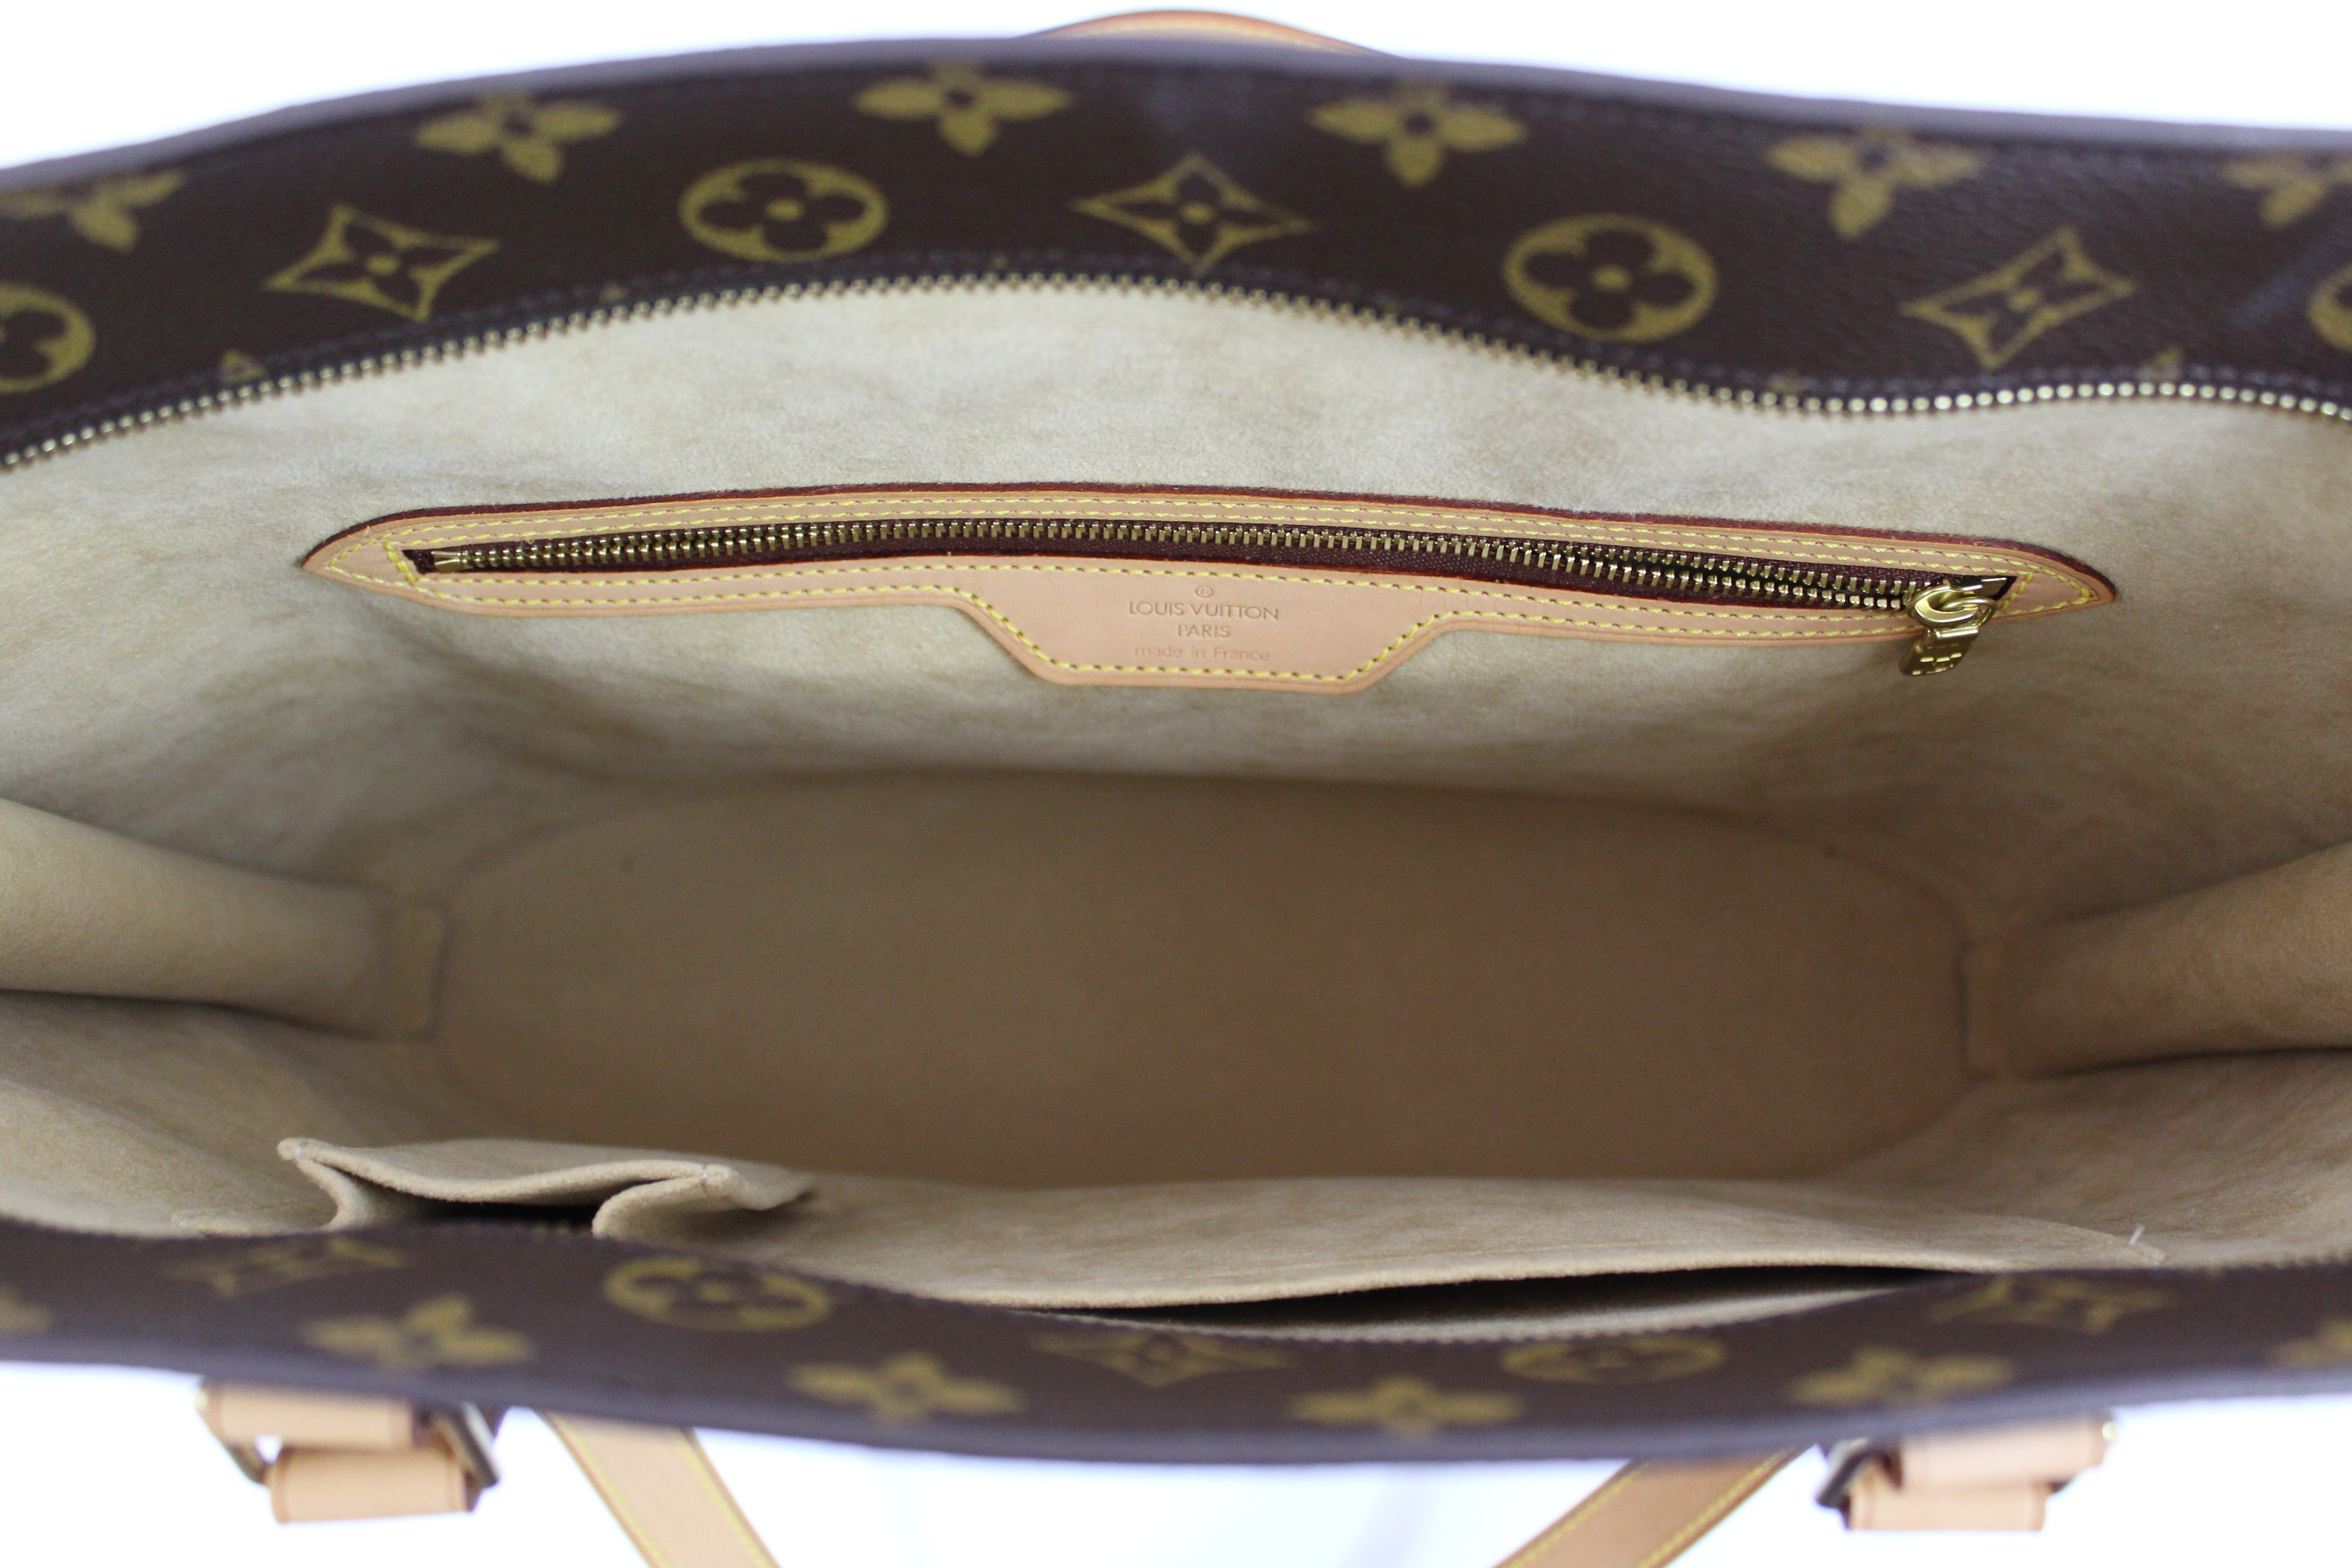 8a0aa85ad953 Louis Vuitton Babylon Monogram Tote – Changes Luxury Consignment